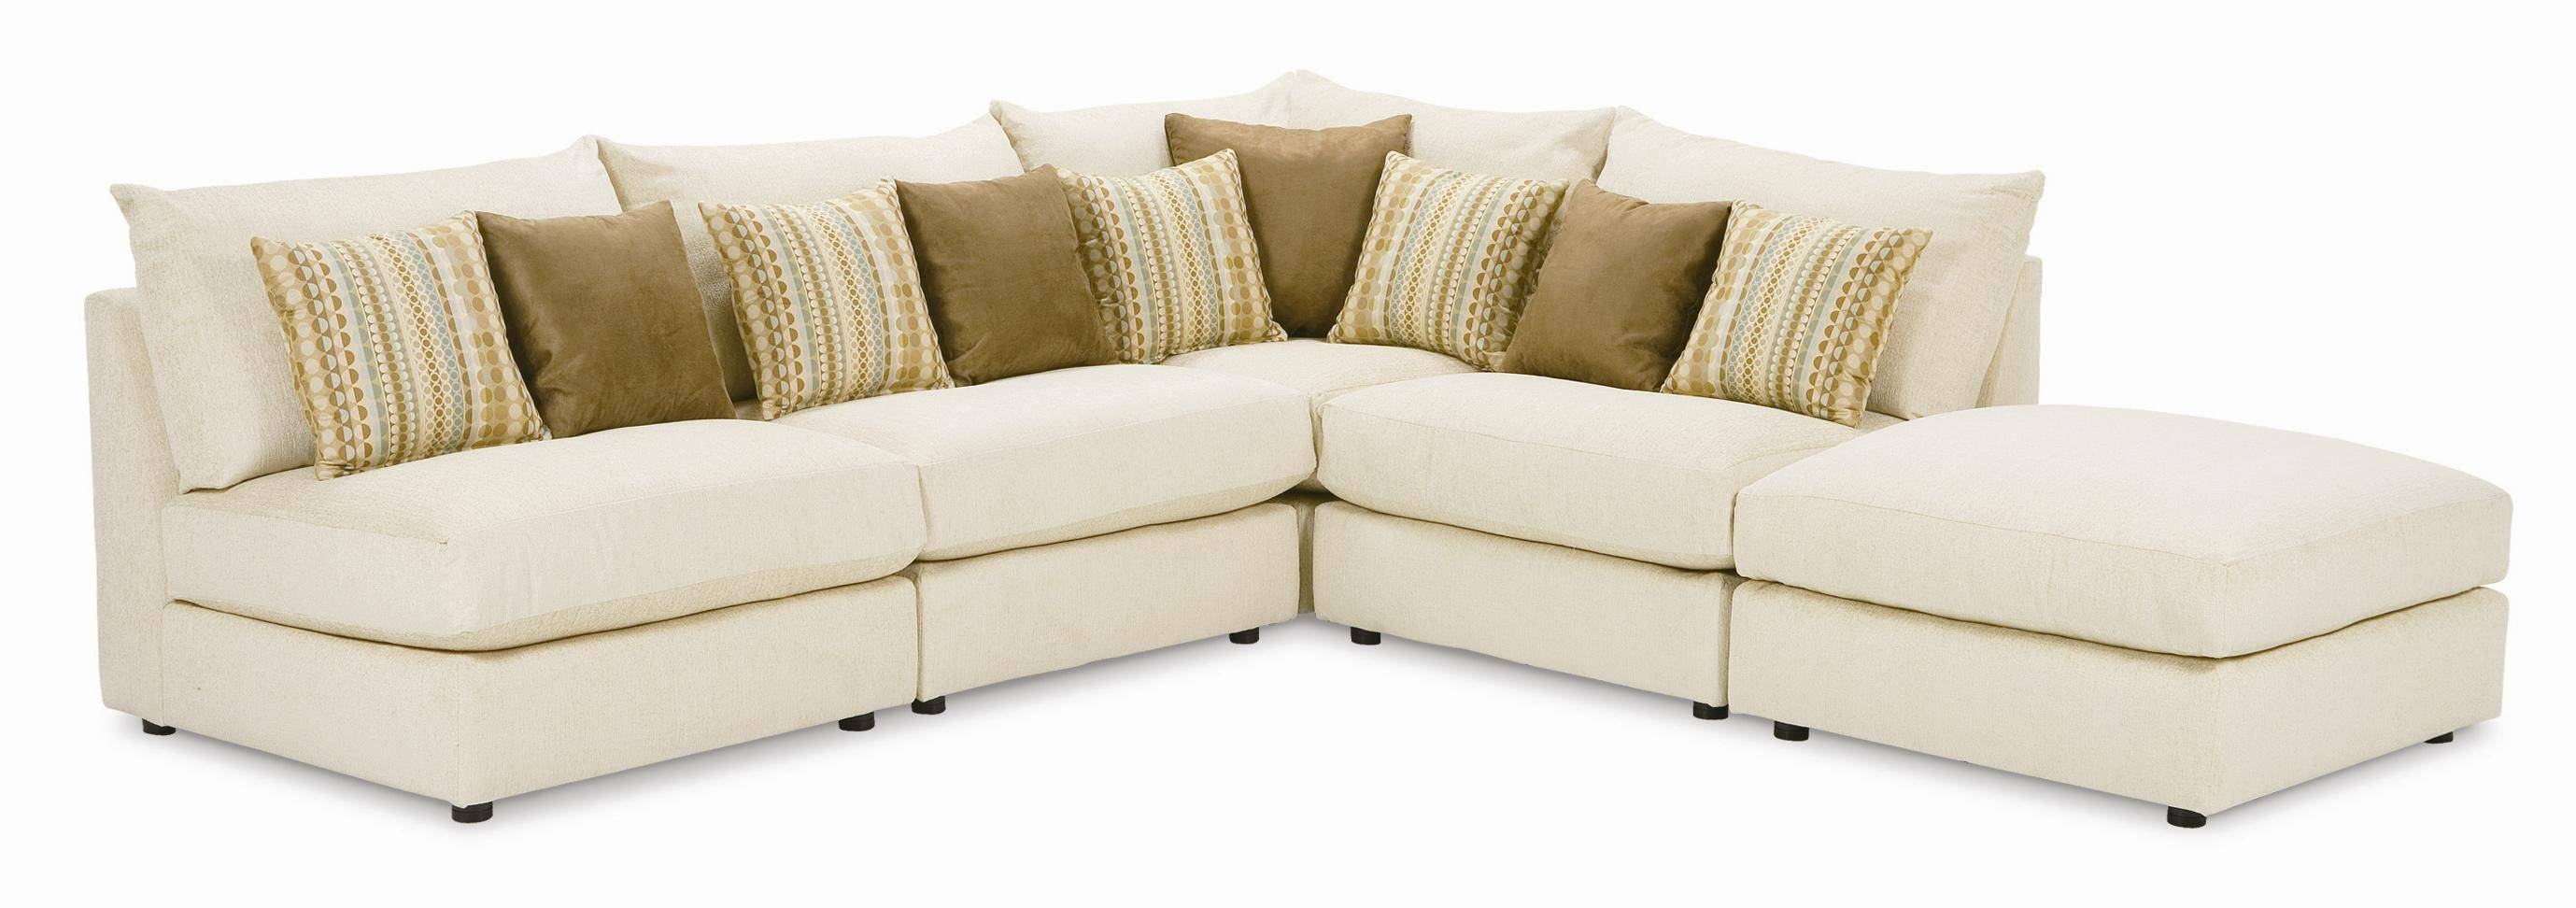 Armless Sectional Sofa | Roselawnlutheran For Armless Sectional Sofas (Photo 1 of 30)